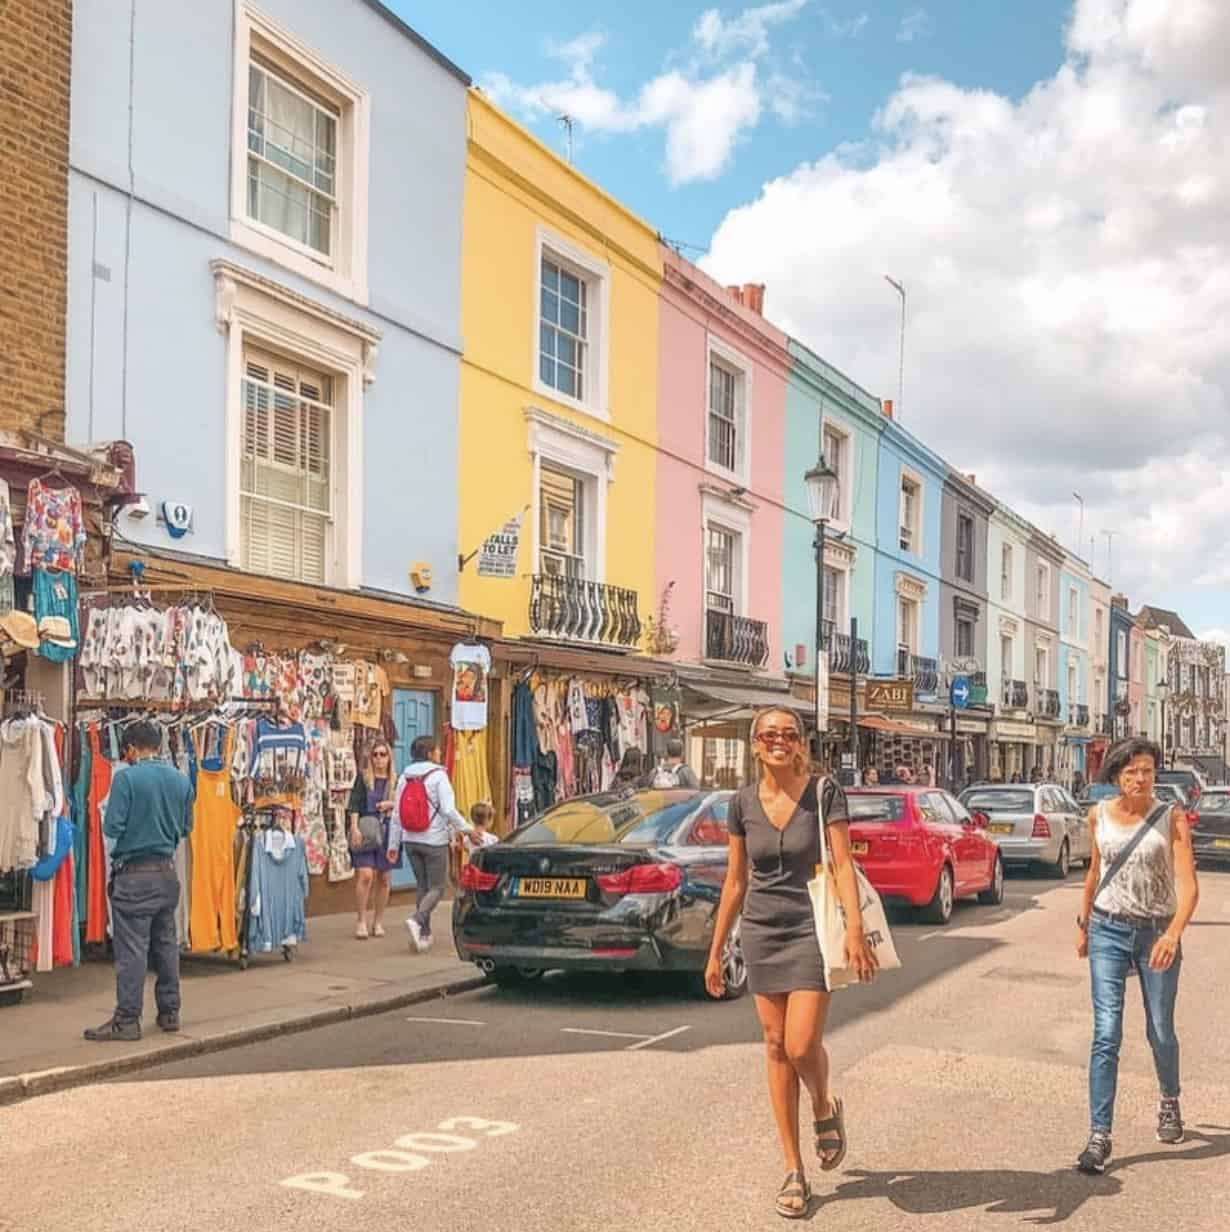 Candace-Abroad-on-Portobello-Road-Notting-Hill-famous-streets-in-london